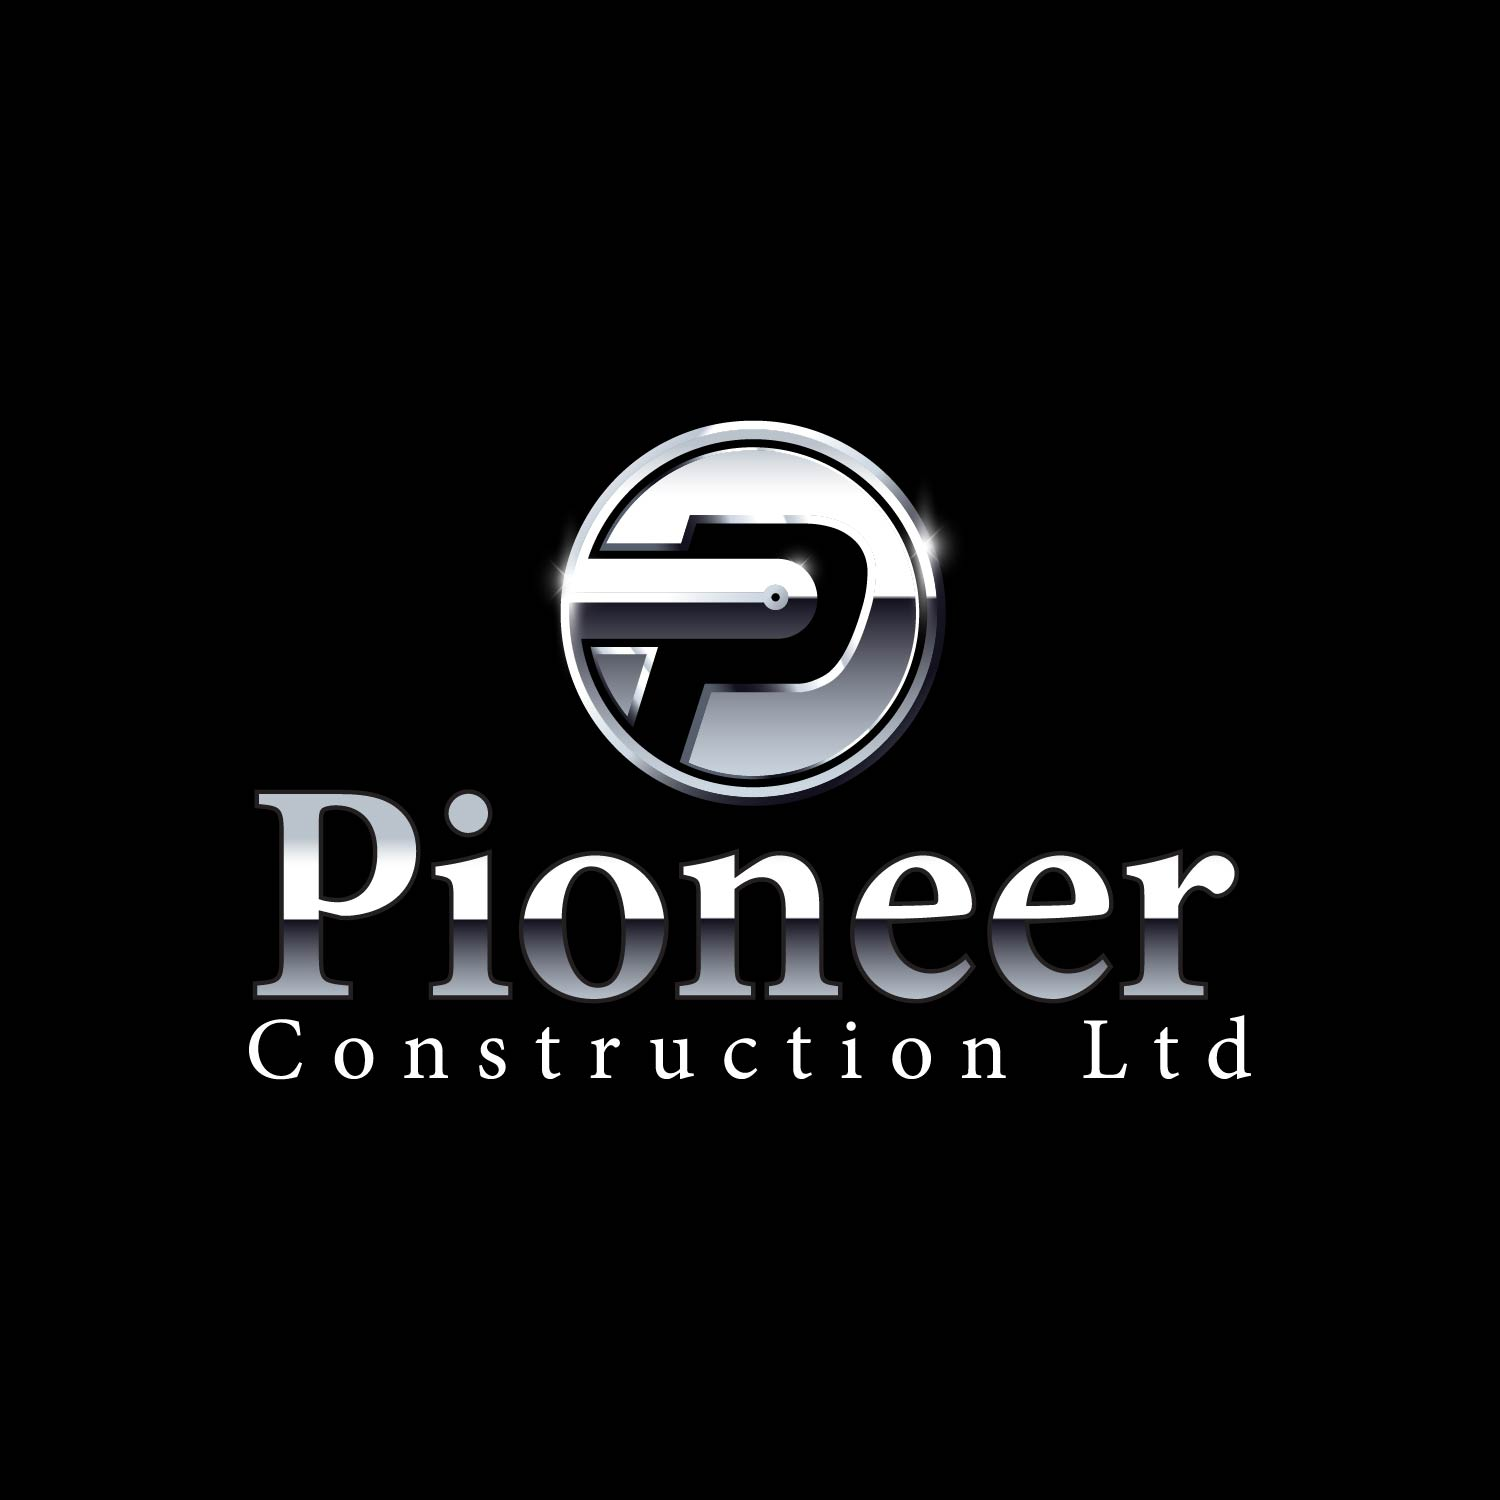 Logo Design by lagalag - Entry No. 44 in the Logo Design Contest Imaginative Logo Design for  Pioneer Construction Ltd.